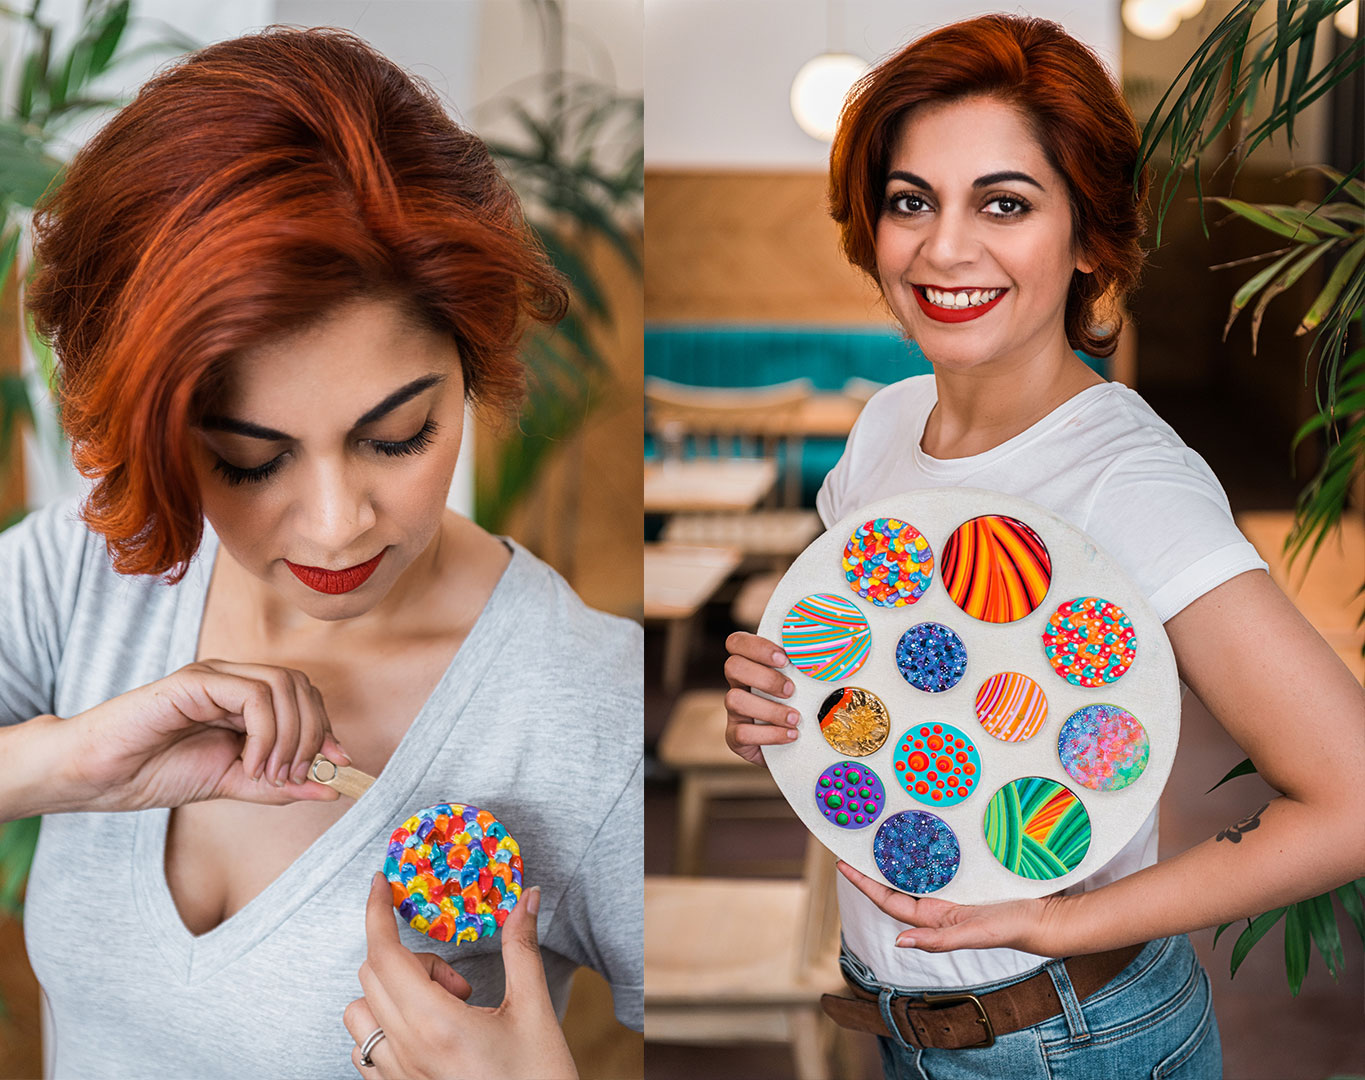 brooches, hand painted brooches, art jewellery, wearable art, unique edition, limited edition, wooden brooches, khaosphilos, artbynaina, naina redhu, naina.co, naina brooches, circular brooches, round brooches